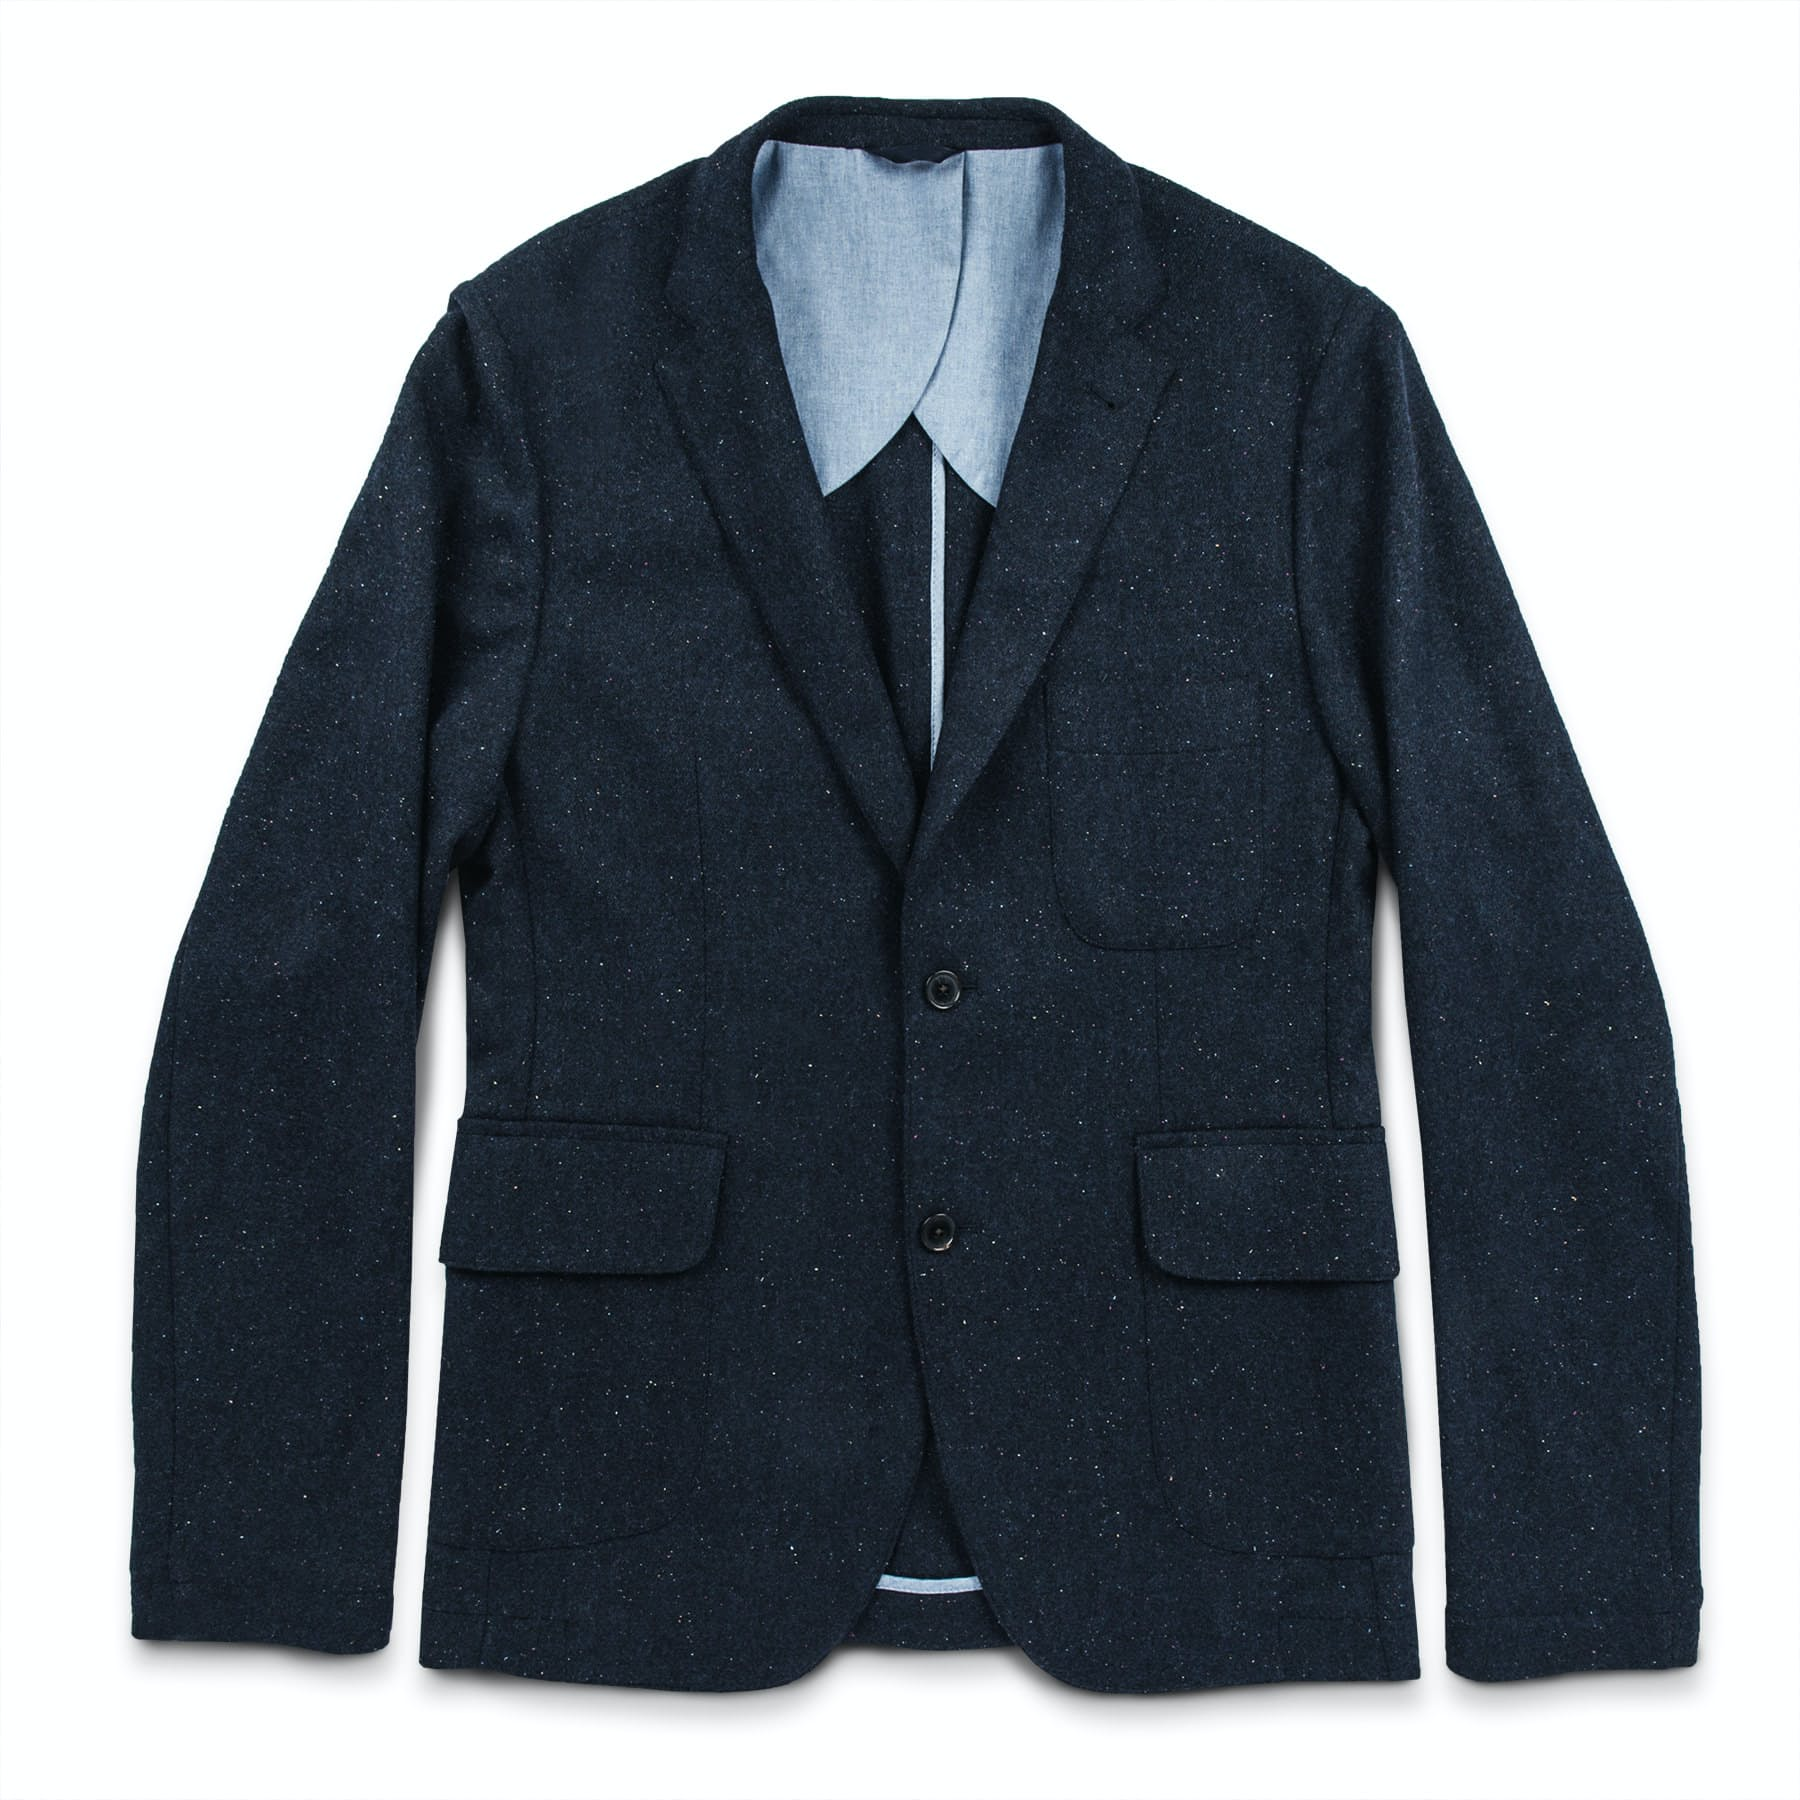 Jjzqnsr9mp taylor stitch the telegraph jacket 0 original